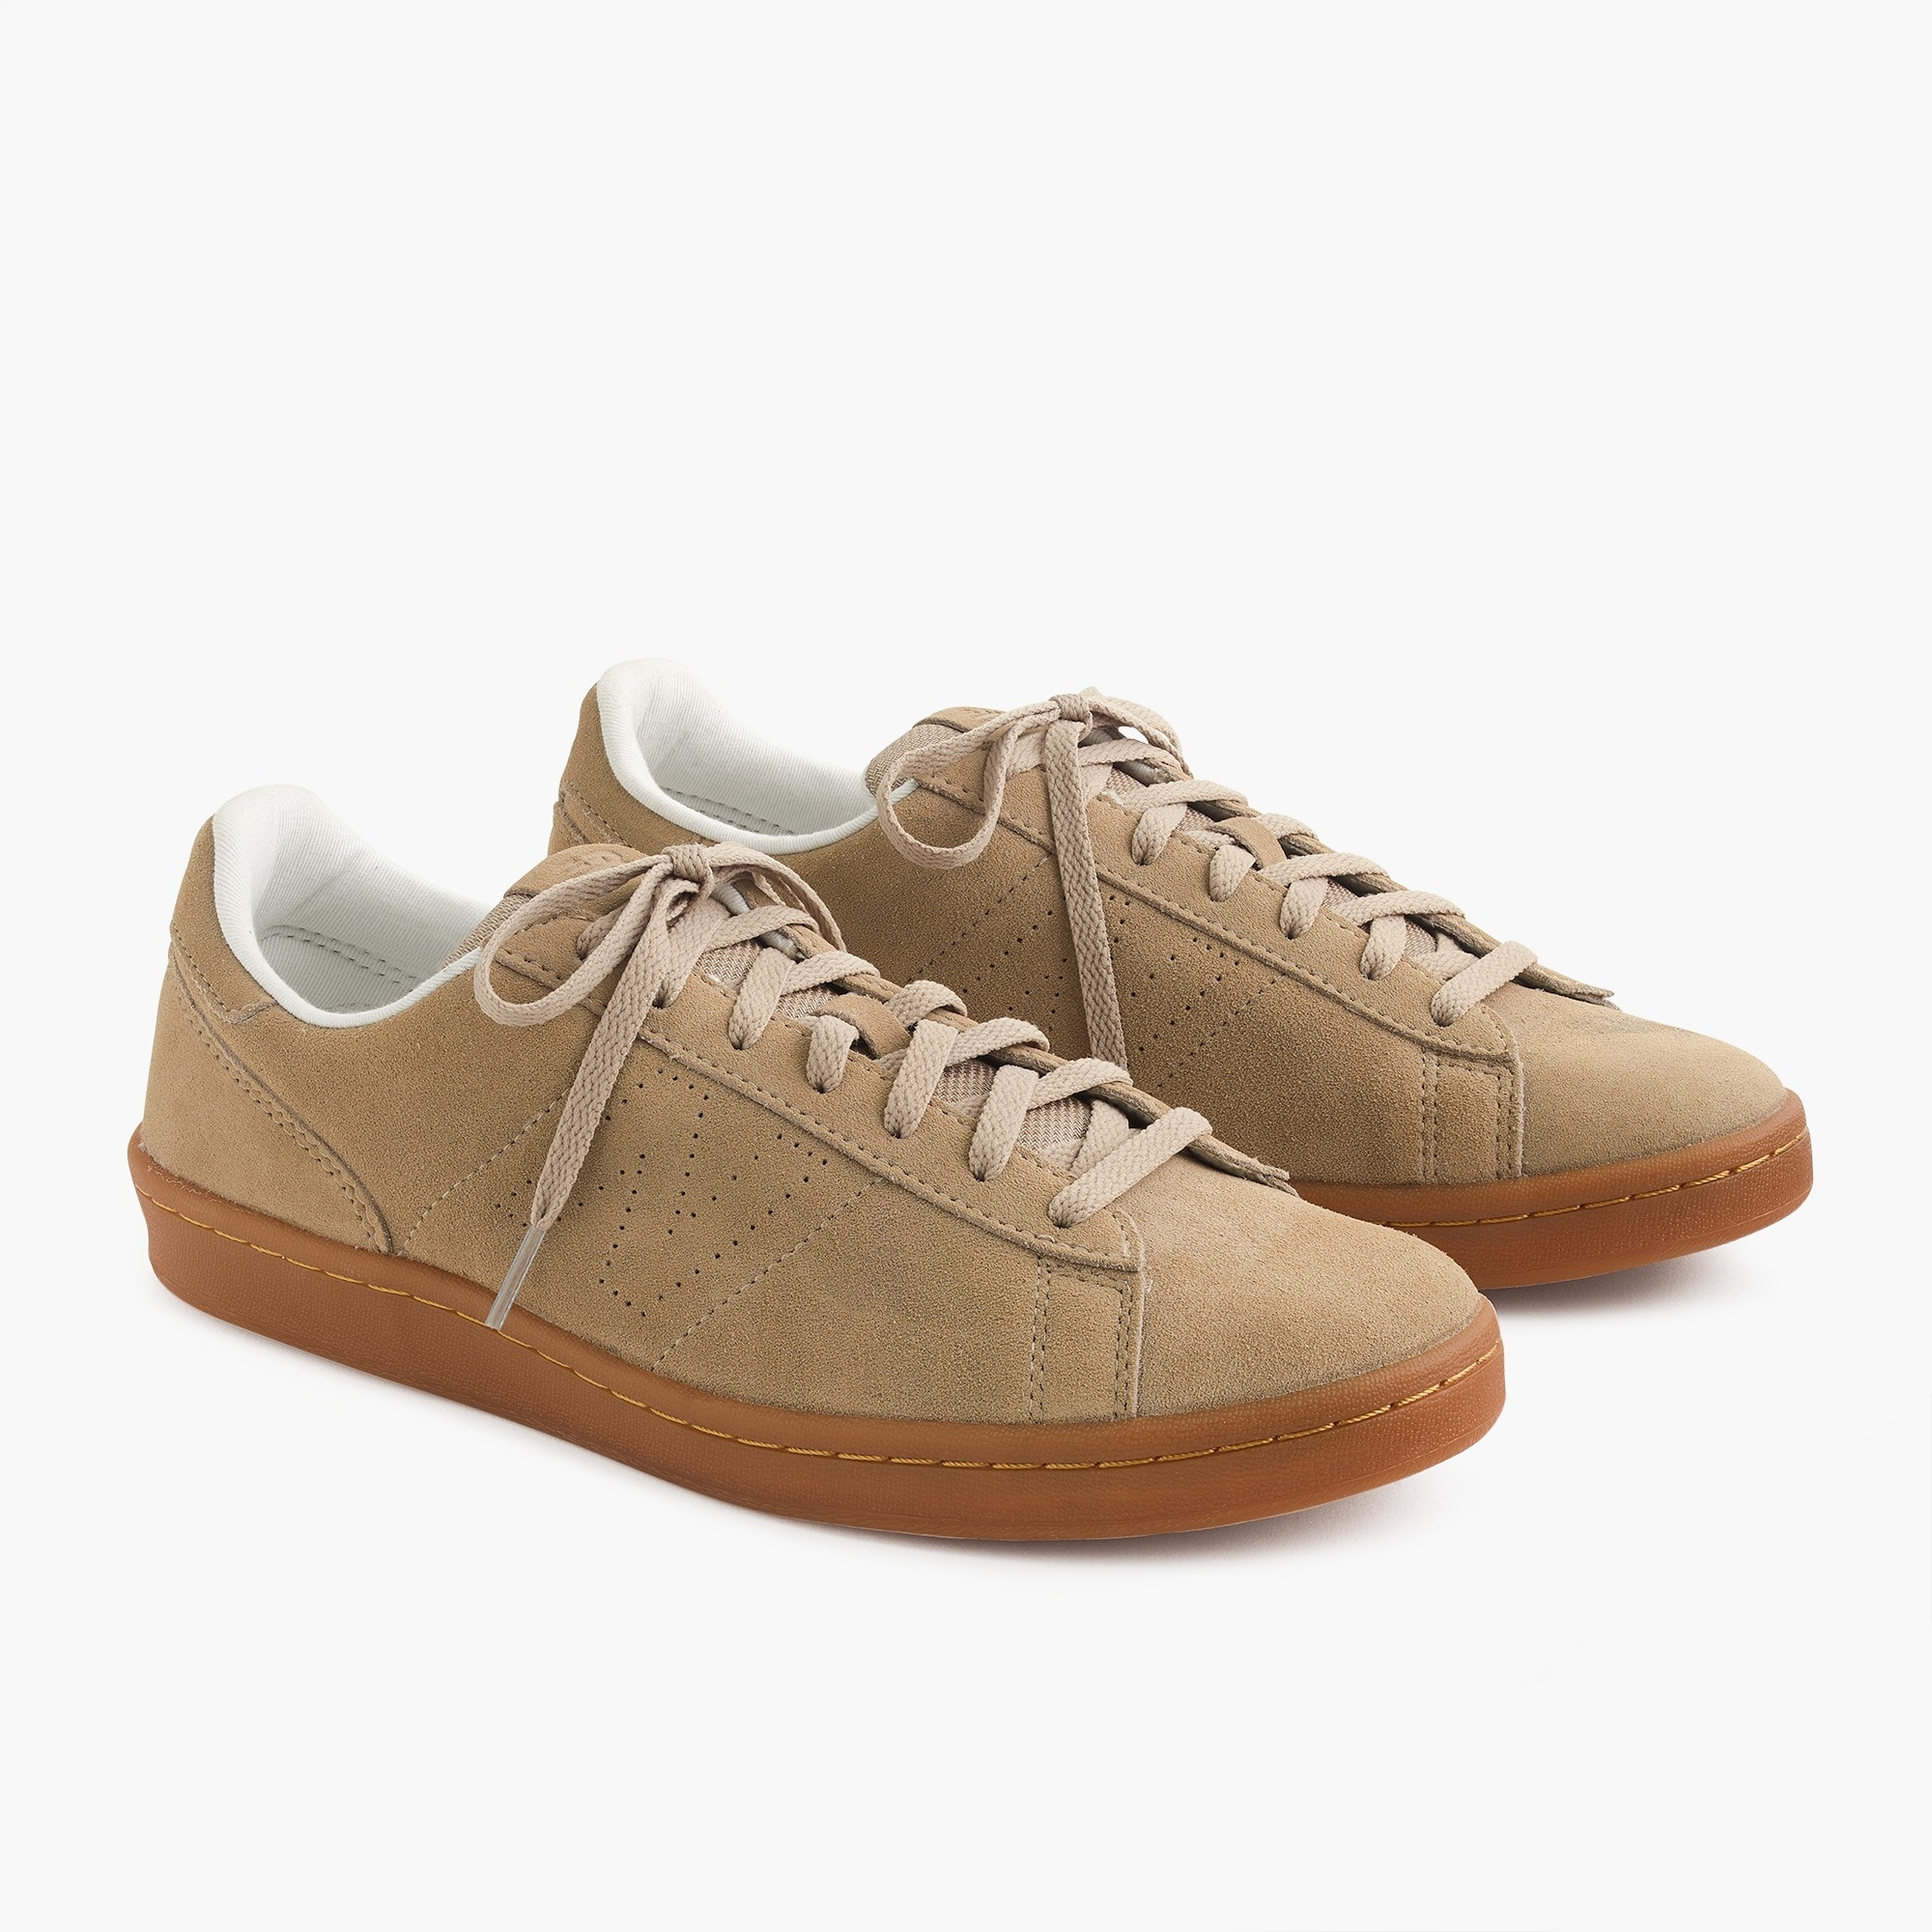 New Balance® for J.Crew 791 sneakers in suede men new arrivals c